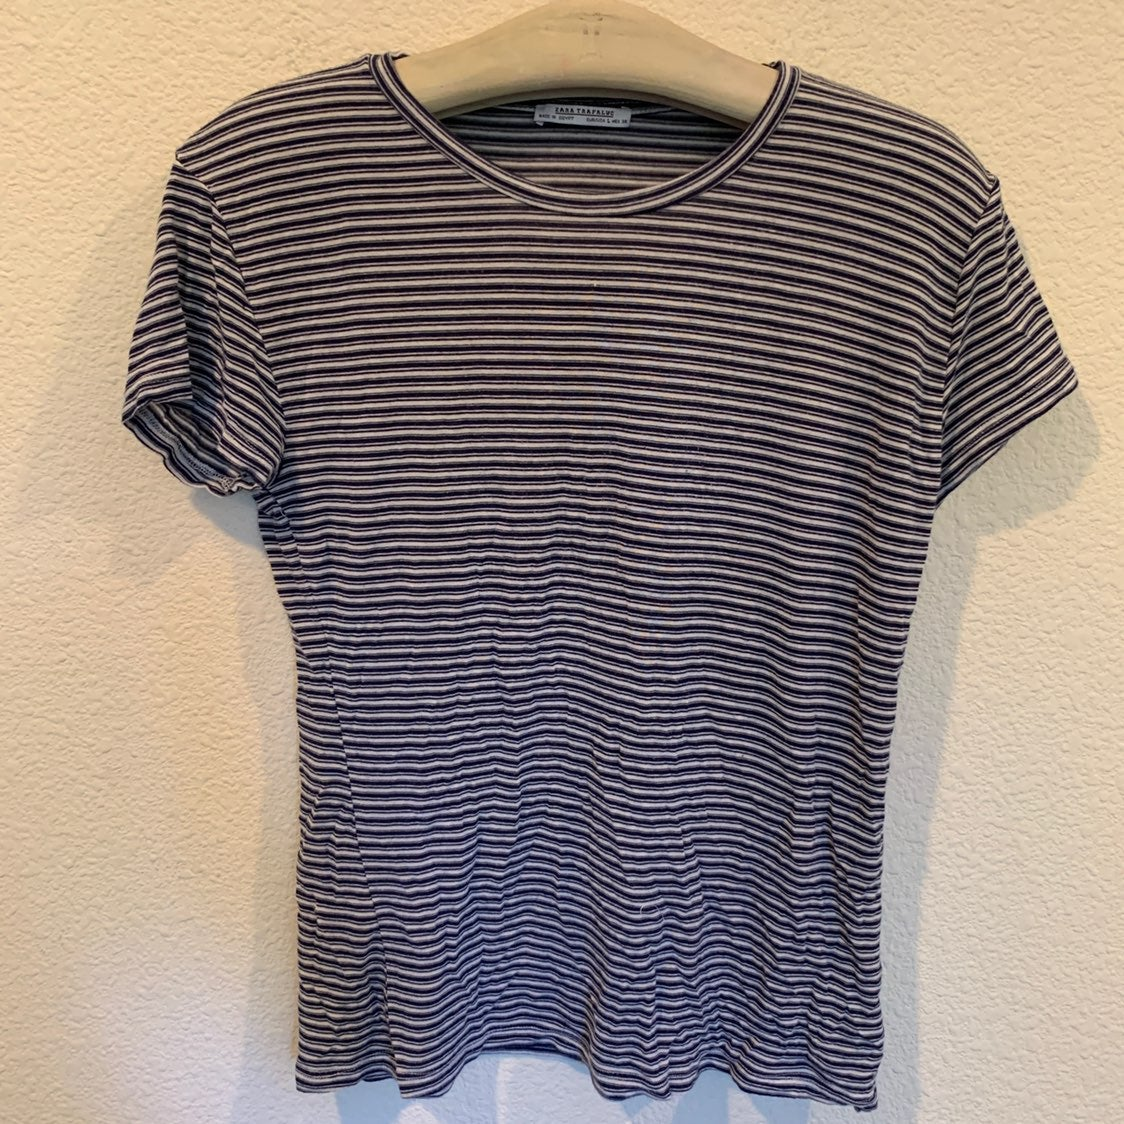 Zara super soft striped tee shirt